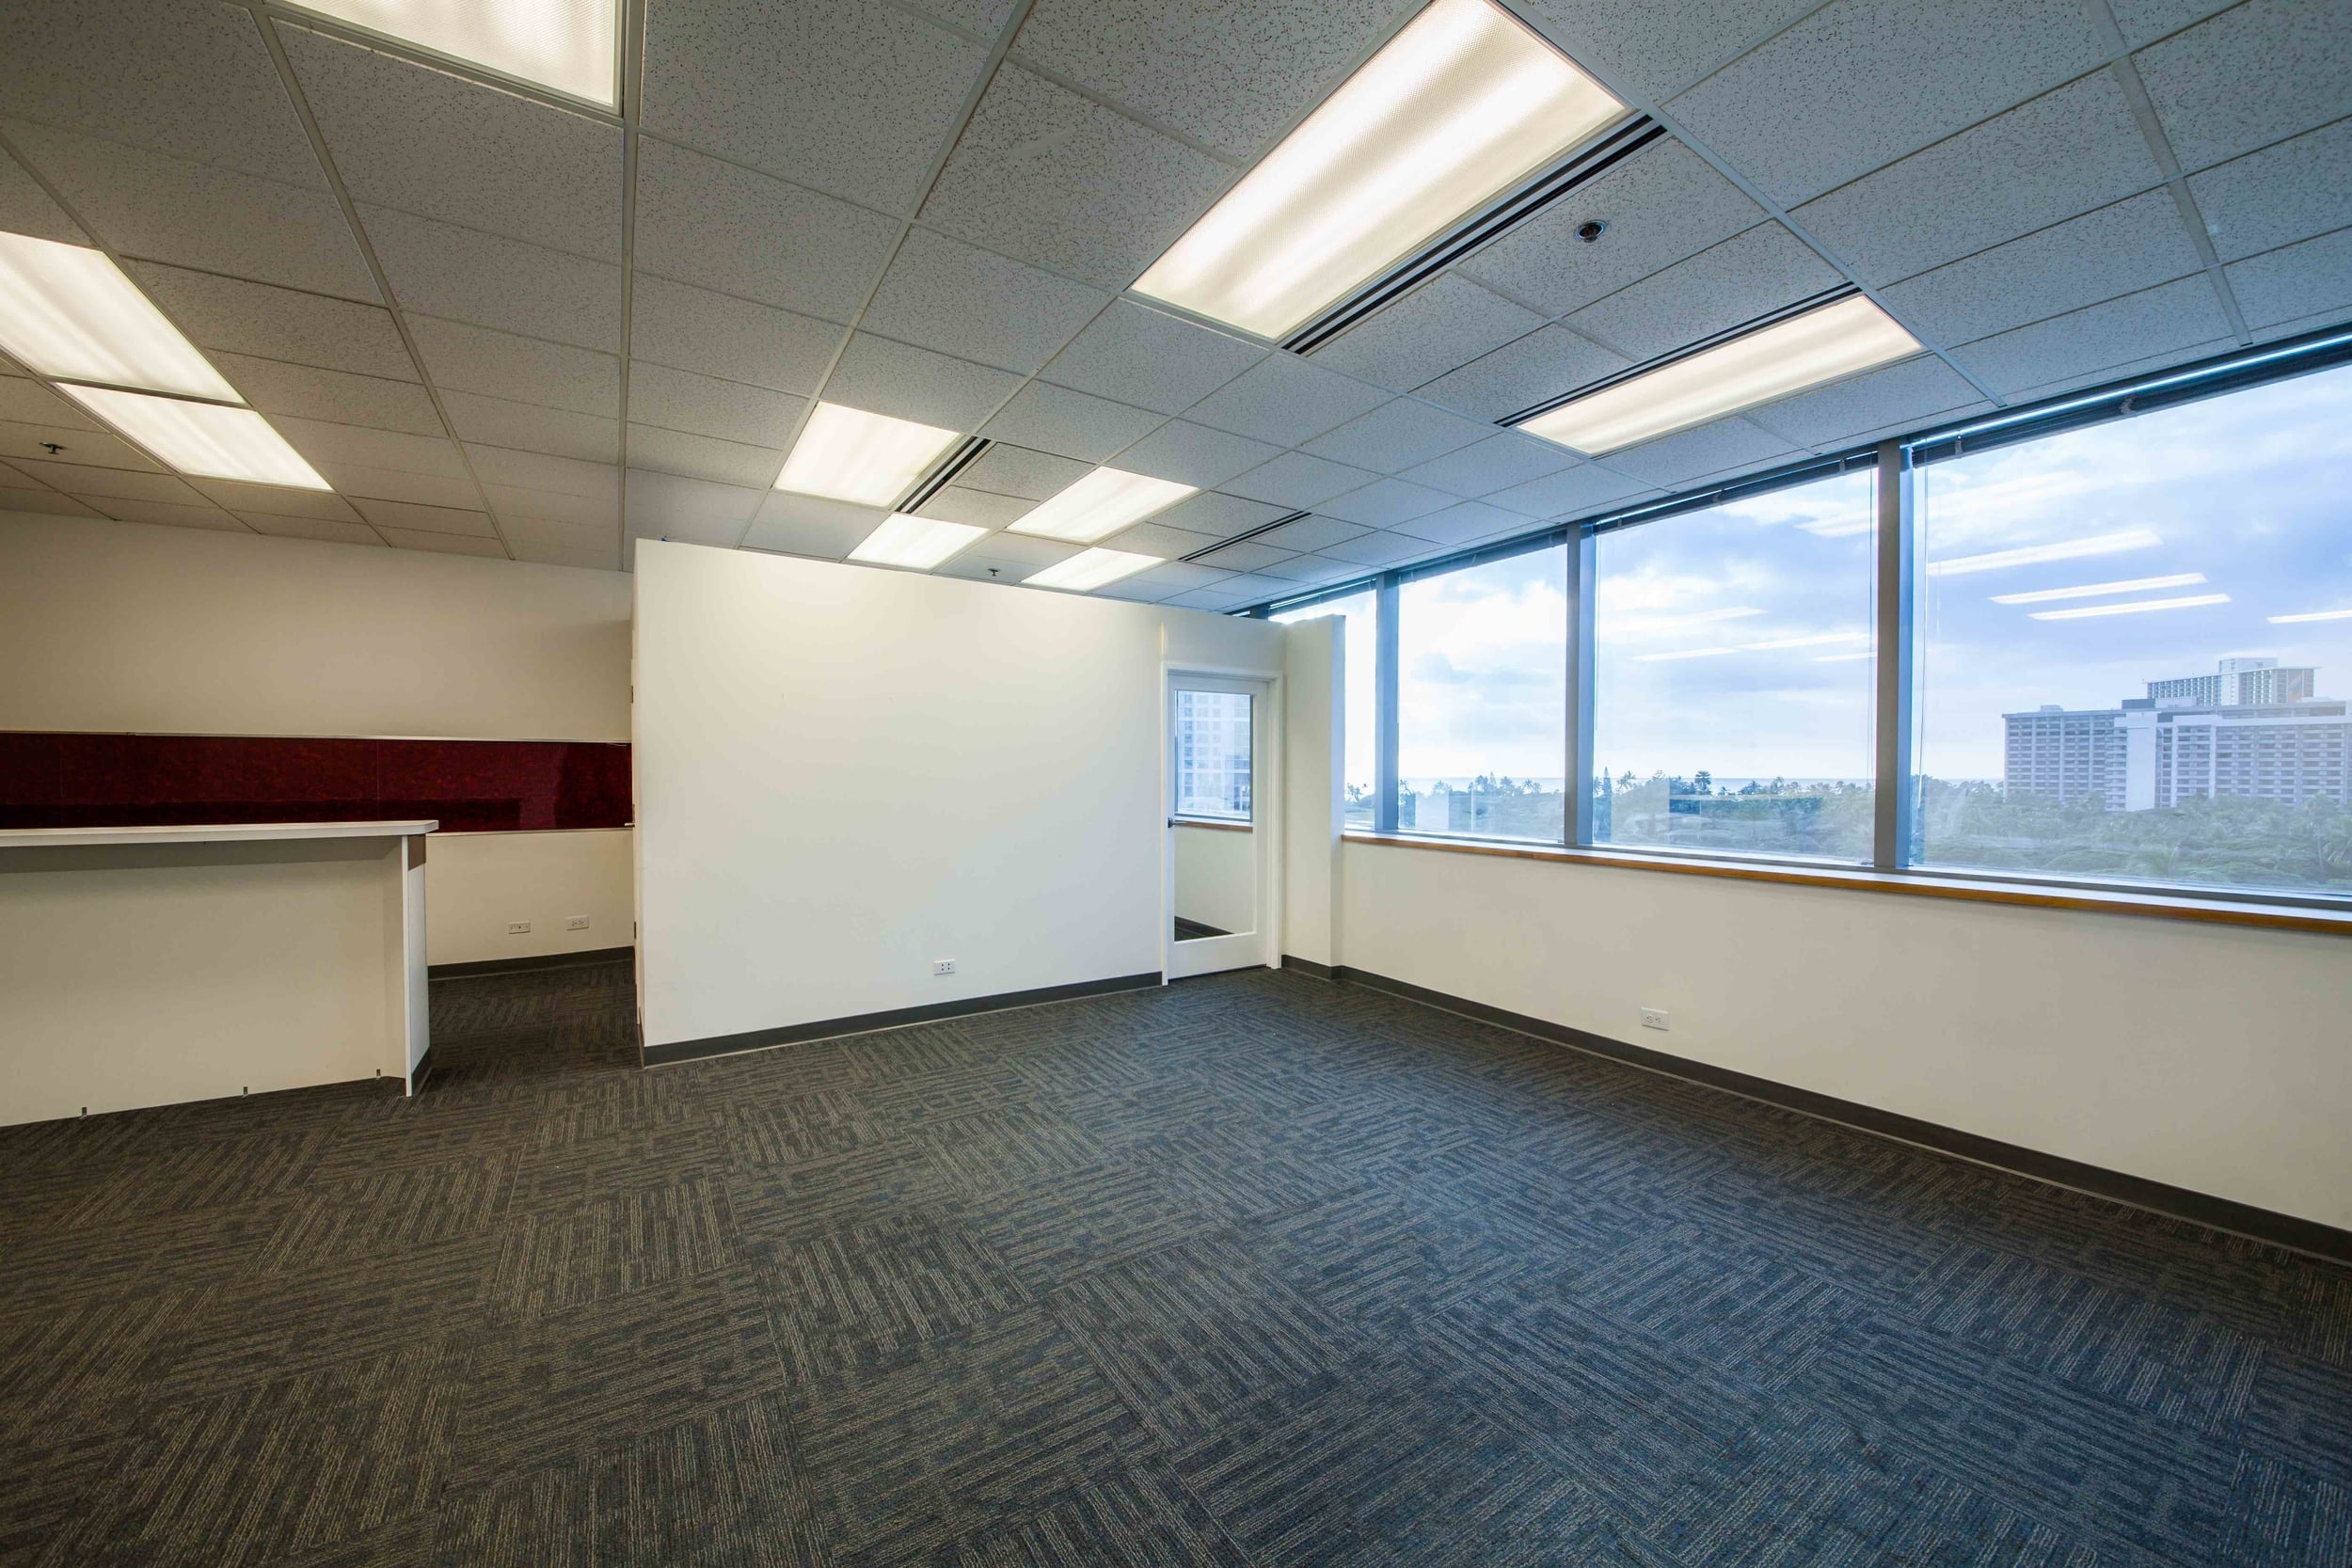 Recently renovated and upgraded with a custom designed reception area and kitchen with running water. Beautiful panorama view of Waikiki, Beachwalk, and the ocean!